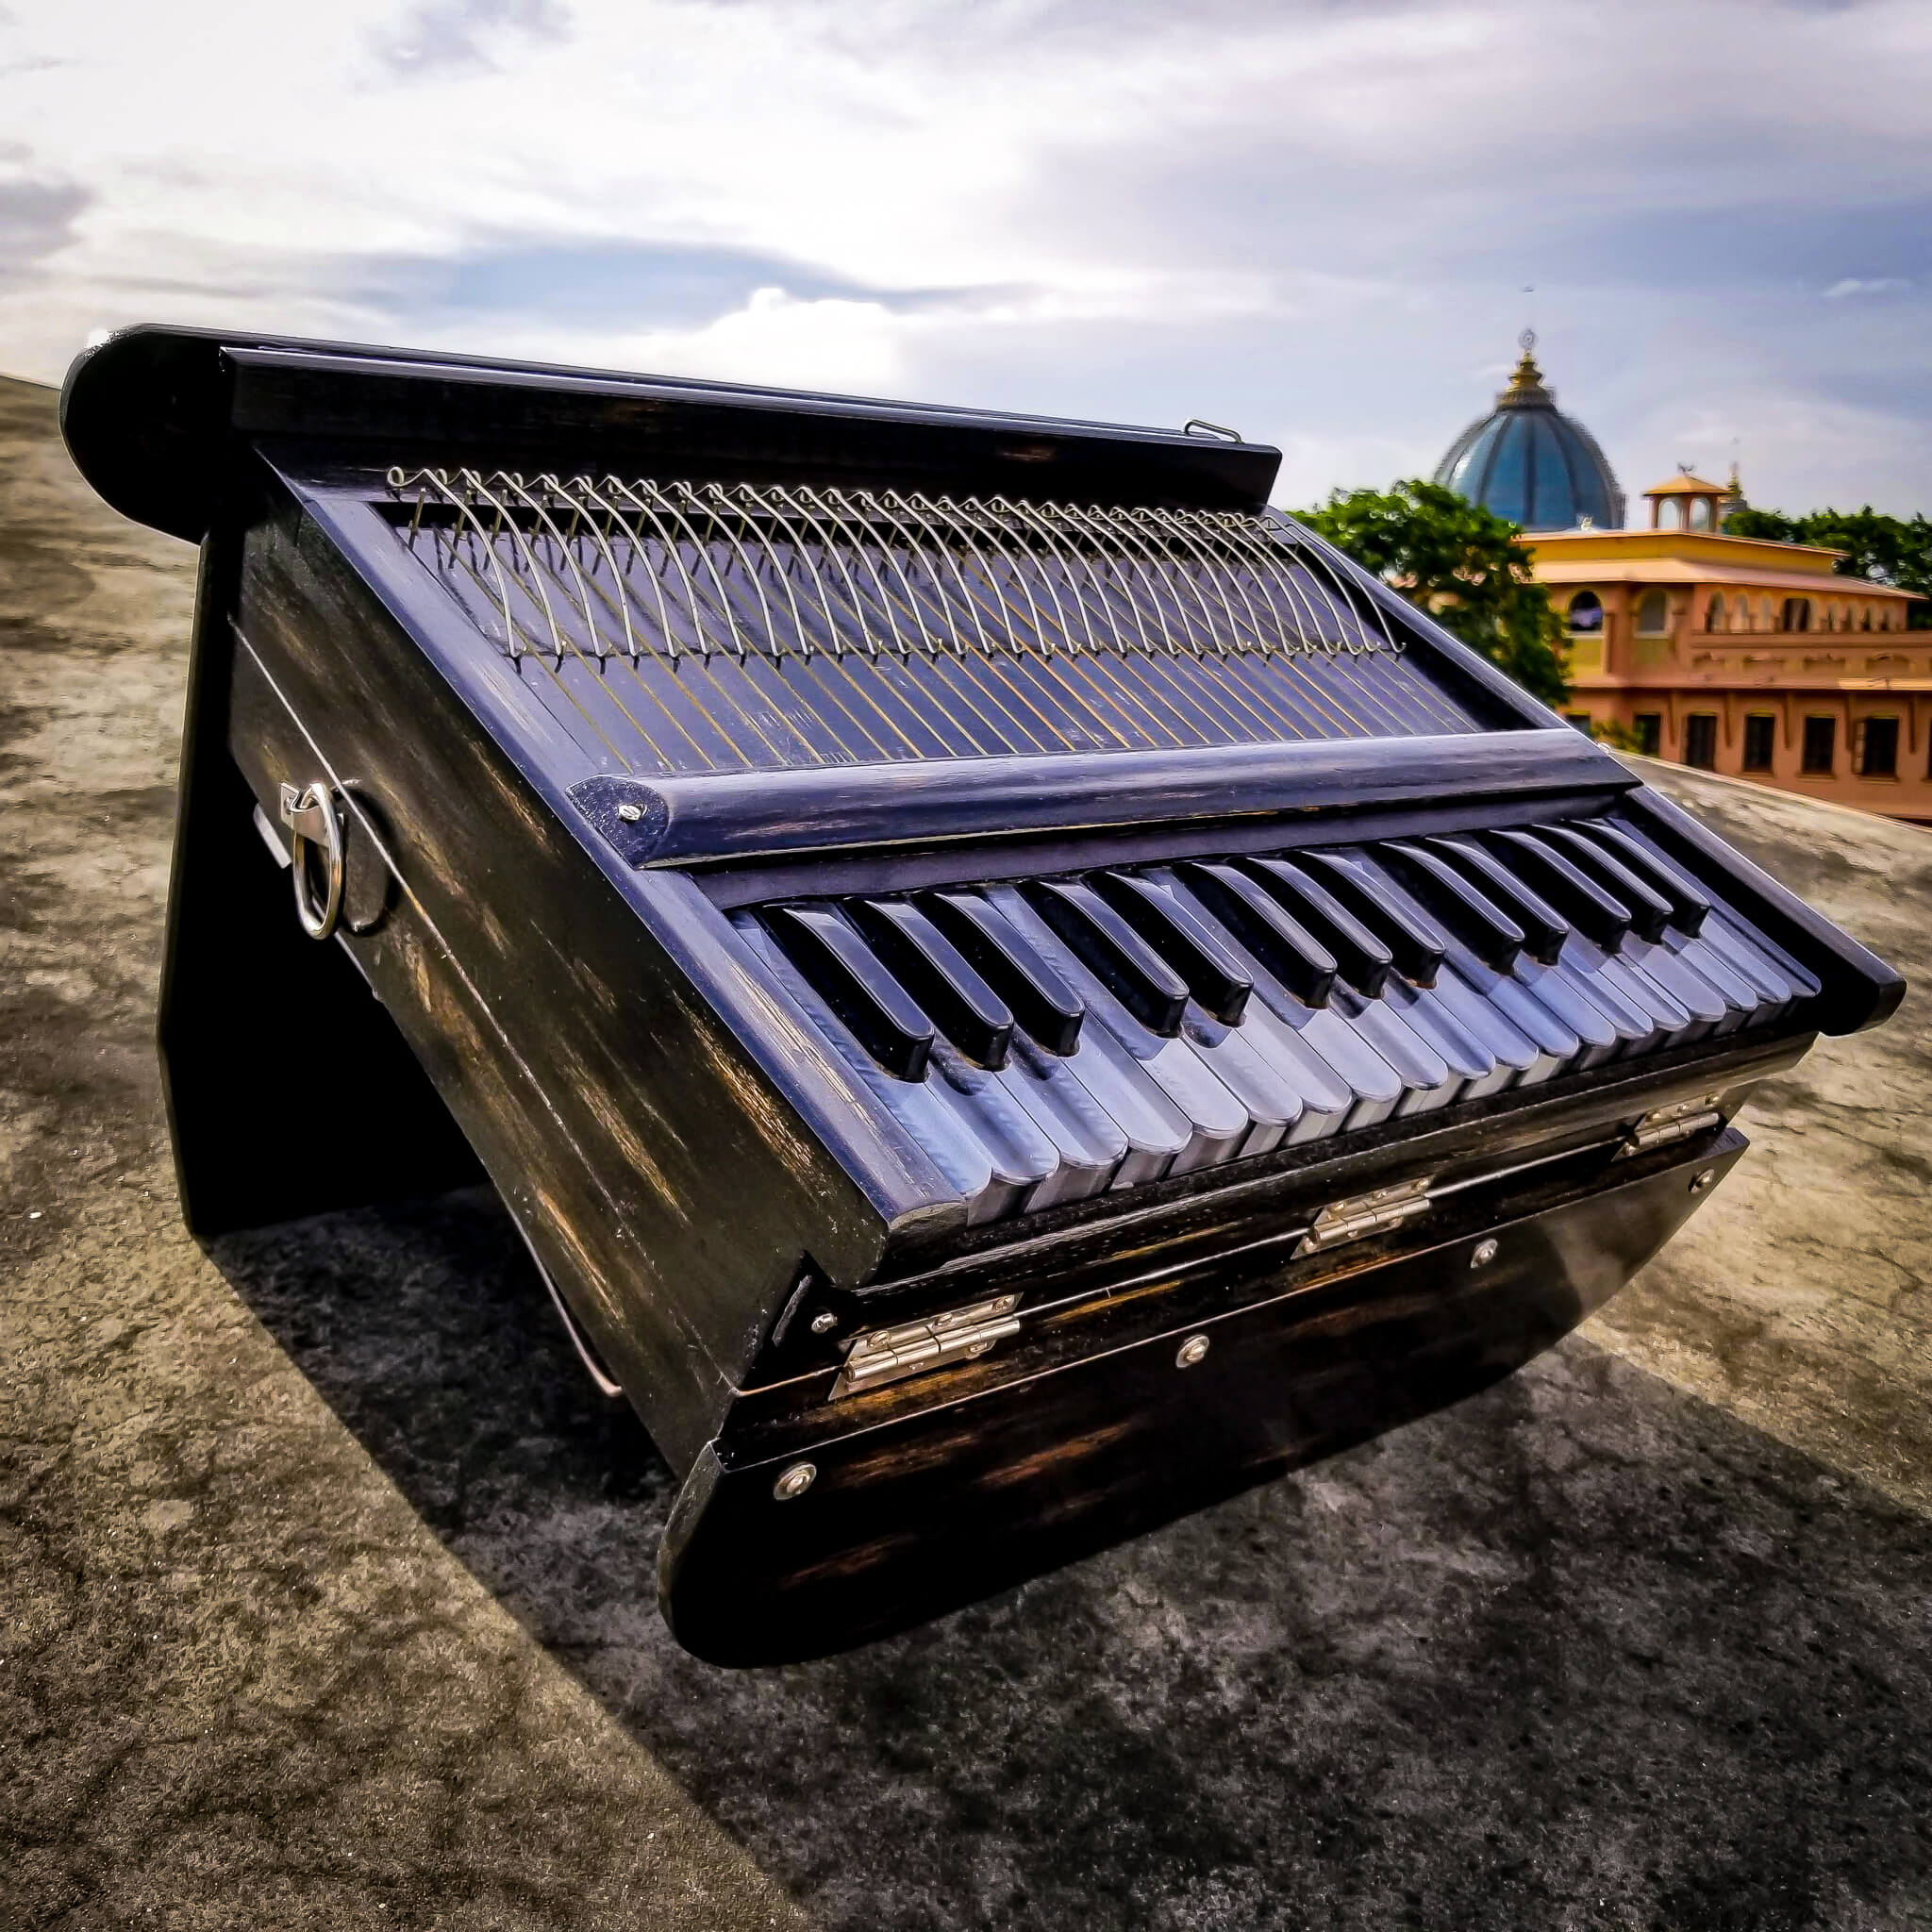 Harinam Harmonium – India